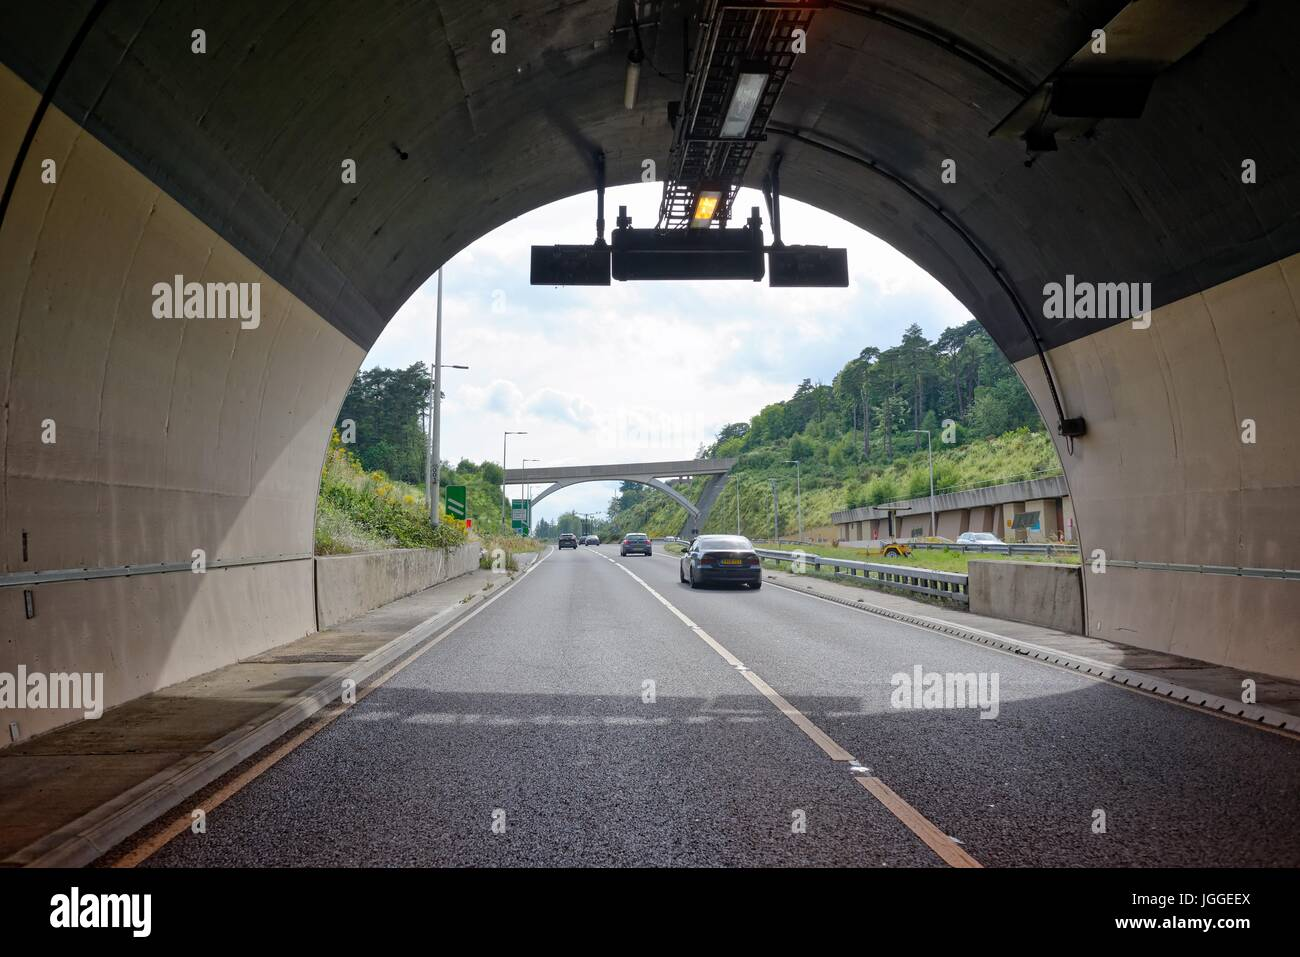 The Hindhead road tunnel on the A3 trunk road Surrey UK - Stock Image